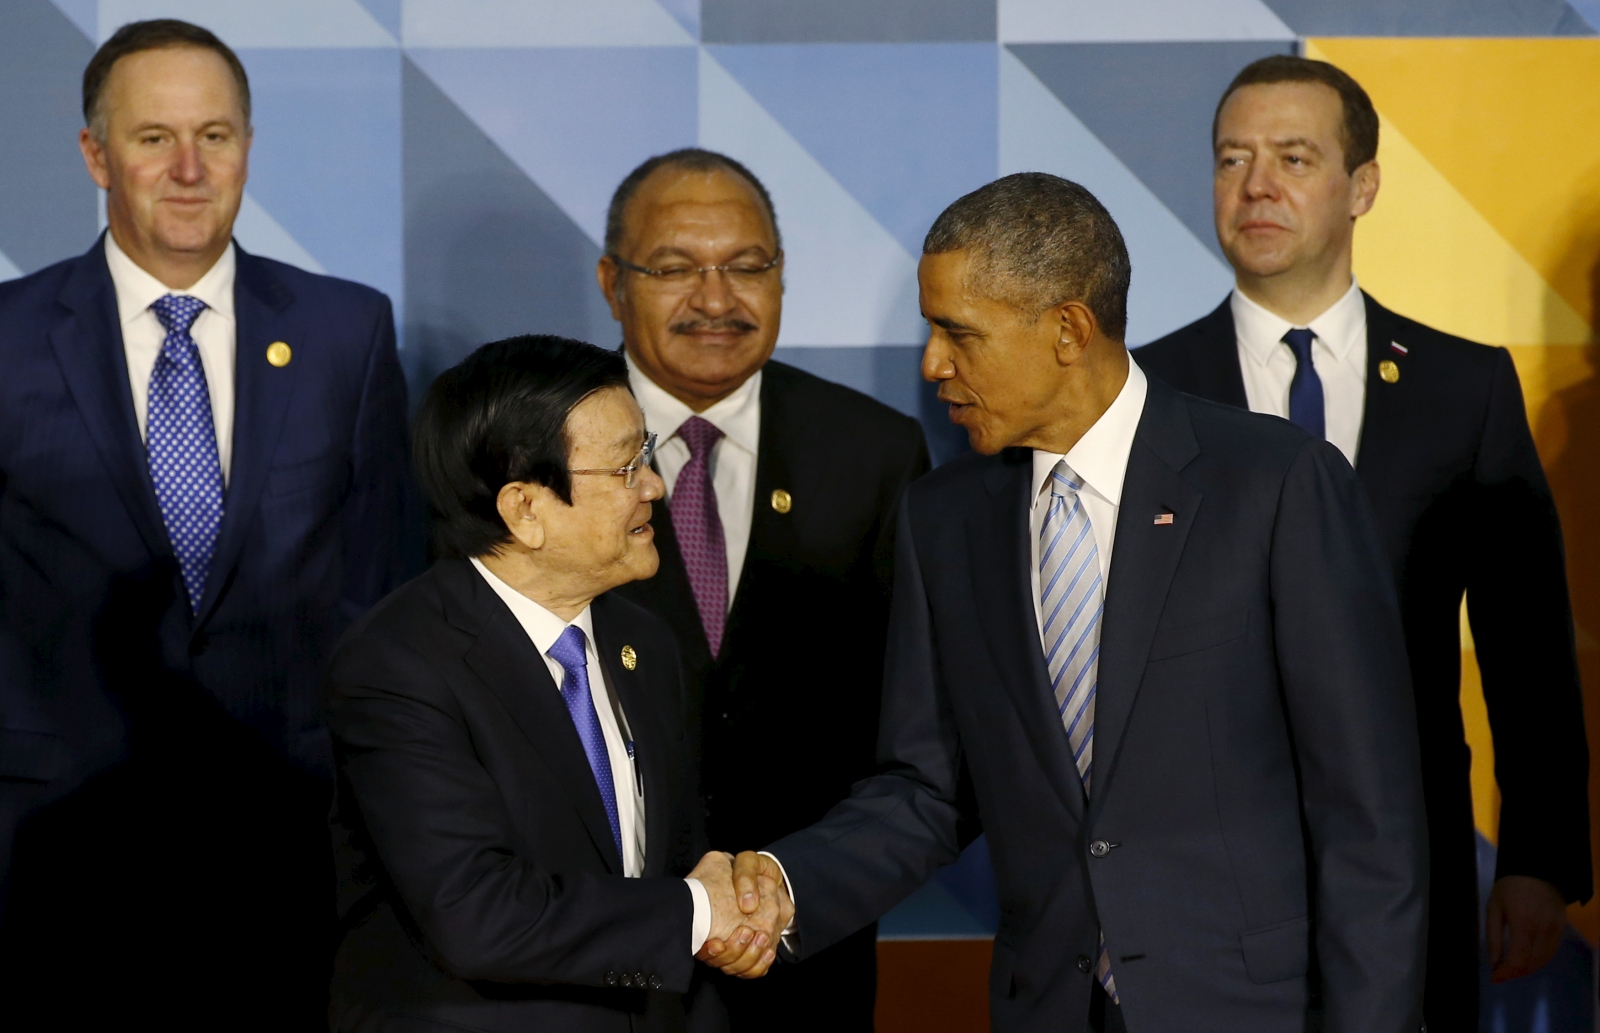 Obama with Vietnam President Truong Tan Sang